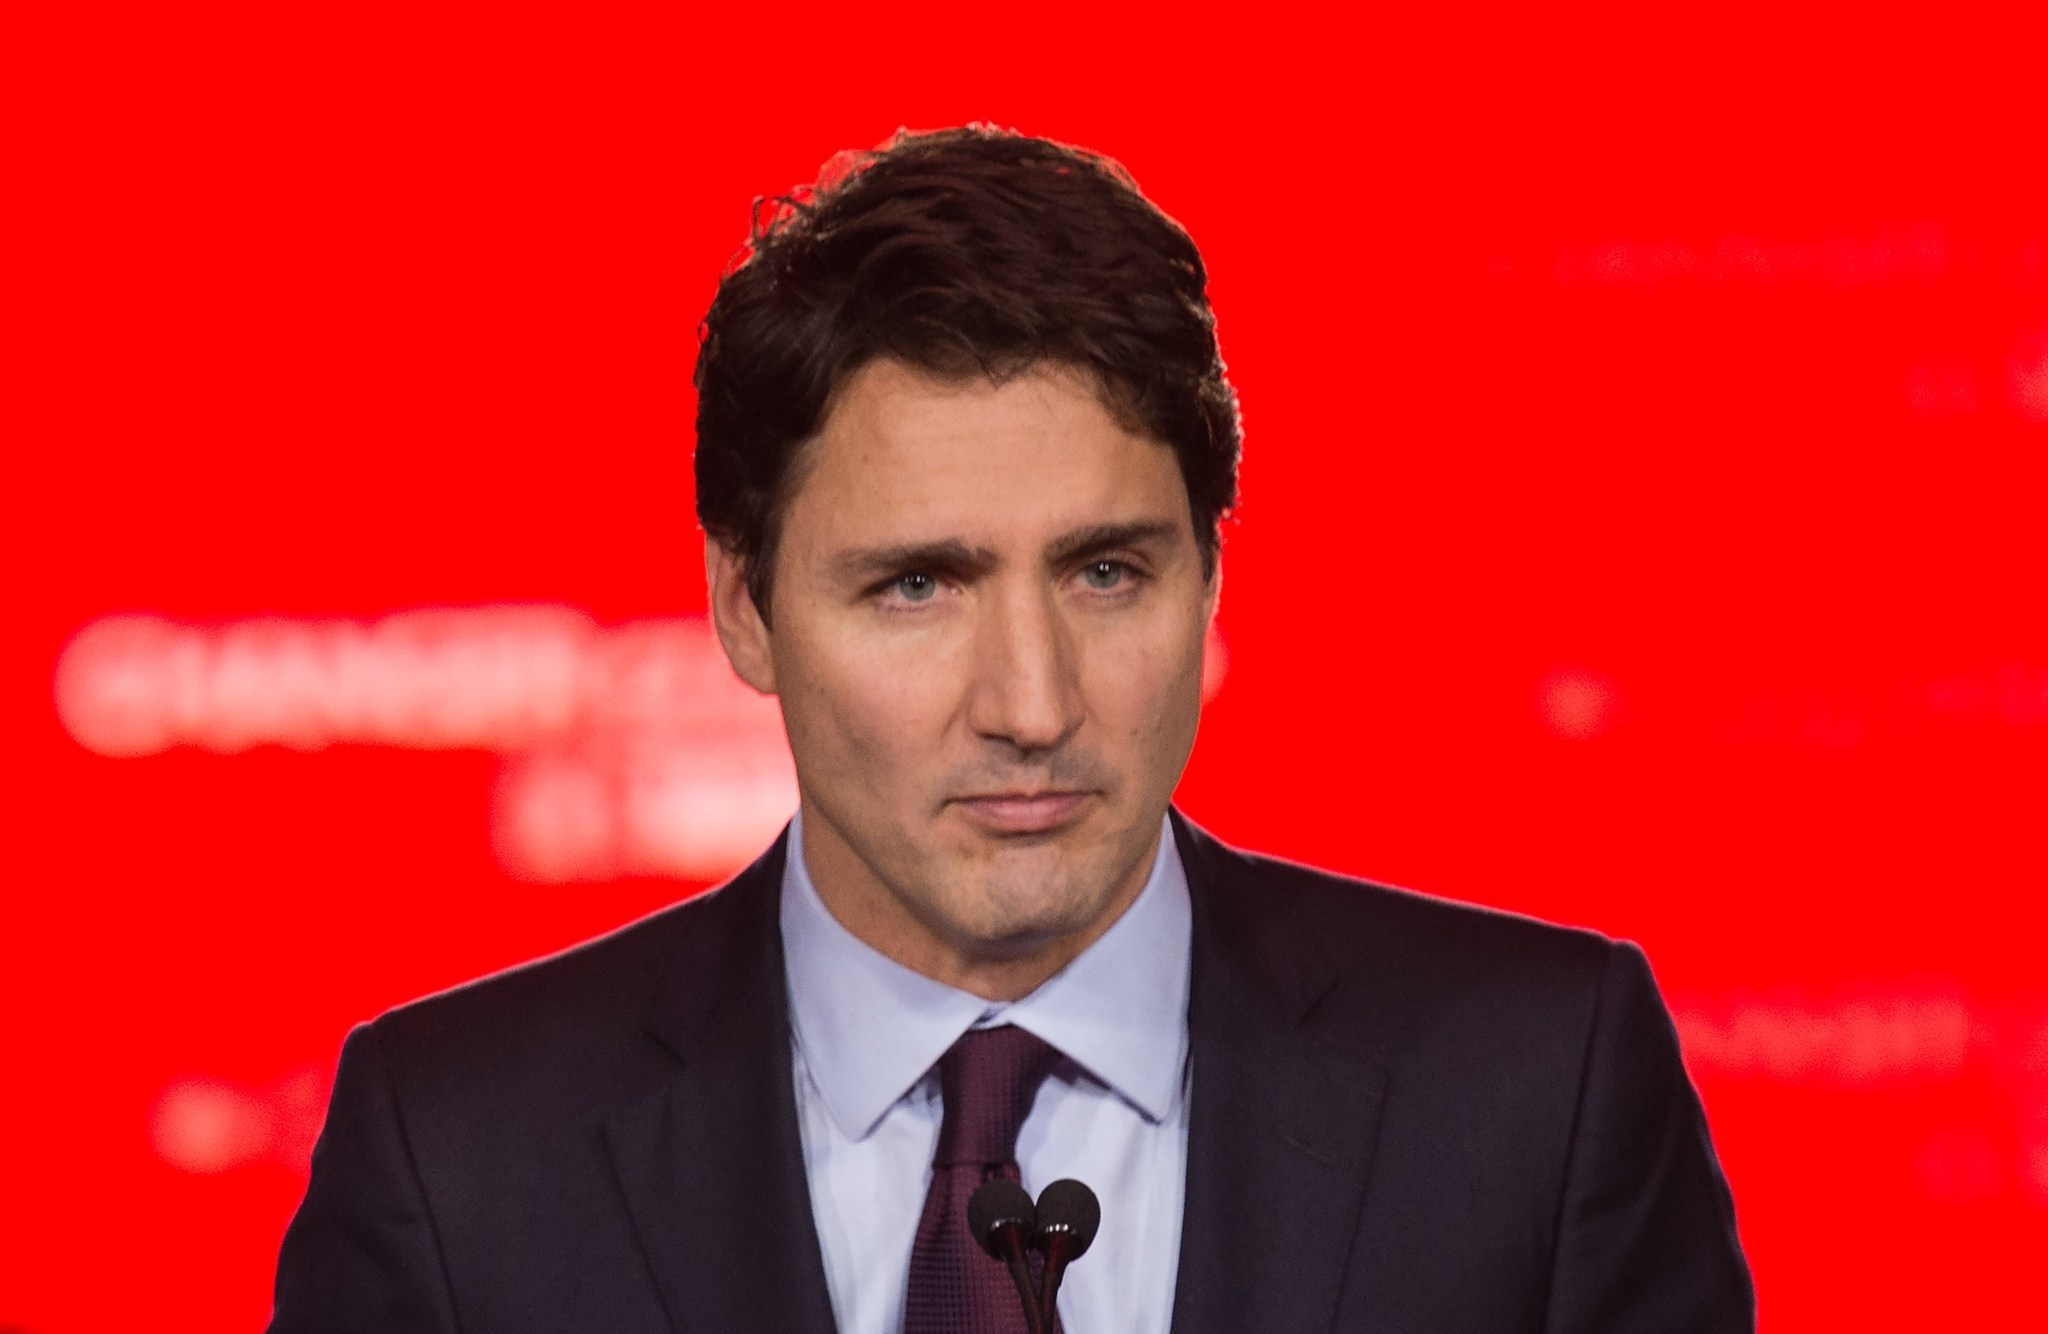 Most influential canadian prime minister since